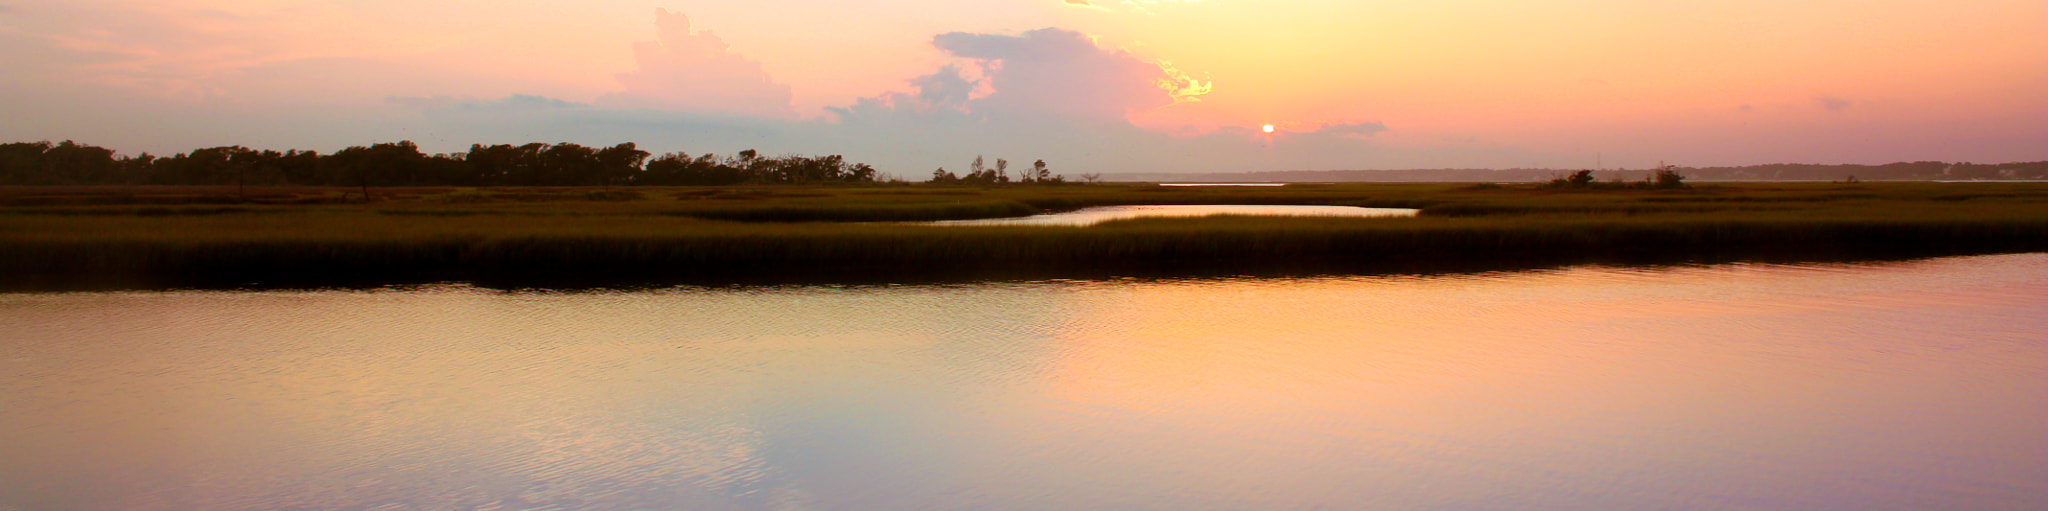 Photograph Atlantic Beach by andrew mccarn on 500px